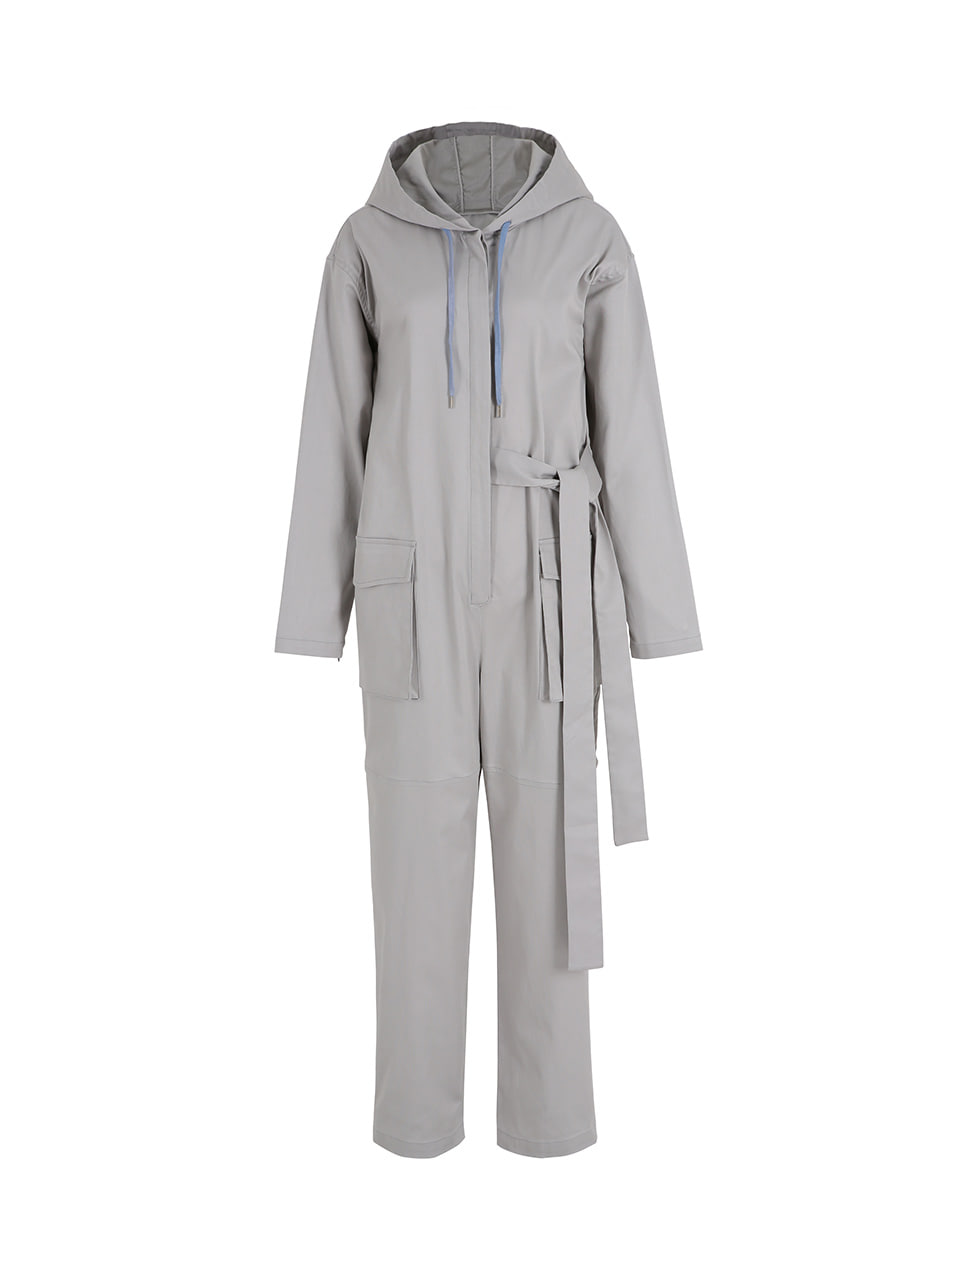 GUKAHooded jumpsuit -grey